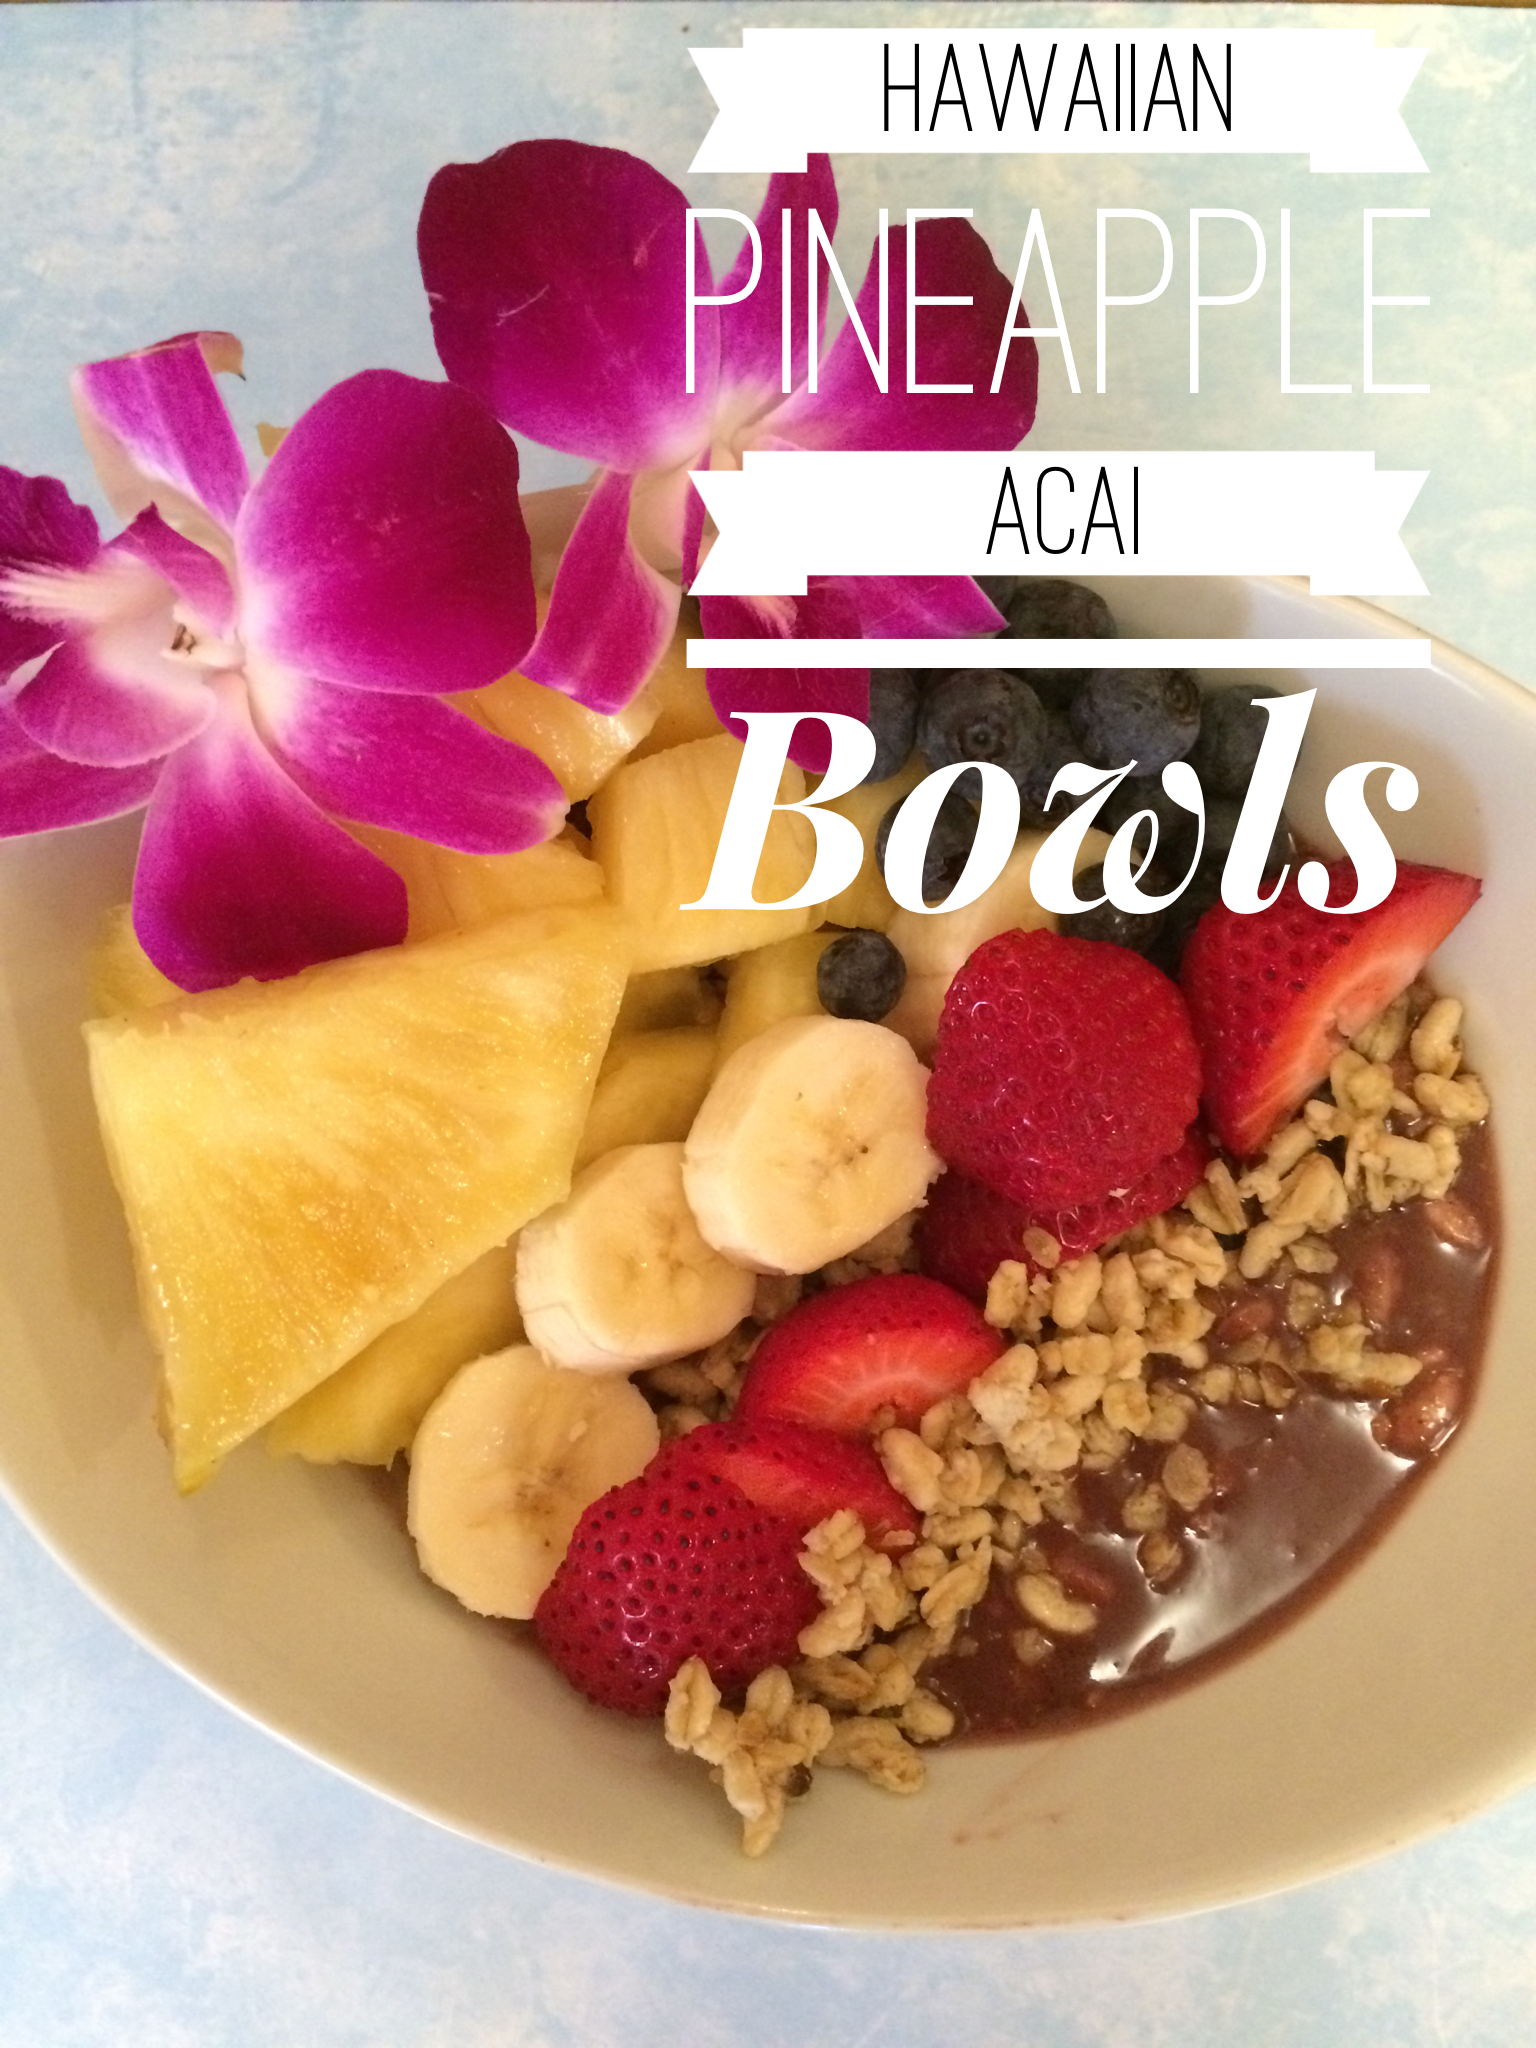 Hawaiian inspired Pineapple Acai bowls you can whip up 5 minutes for a healthy, easy breakfast or snack